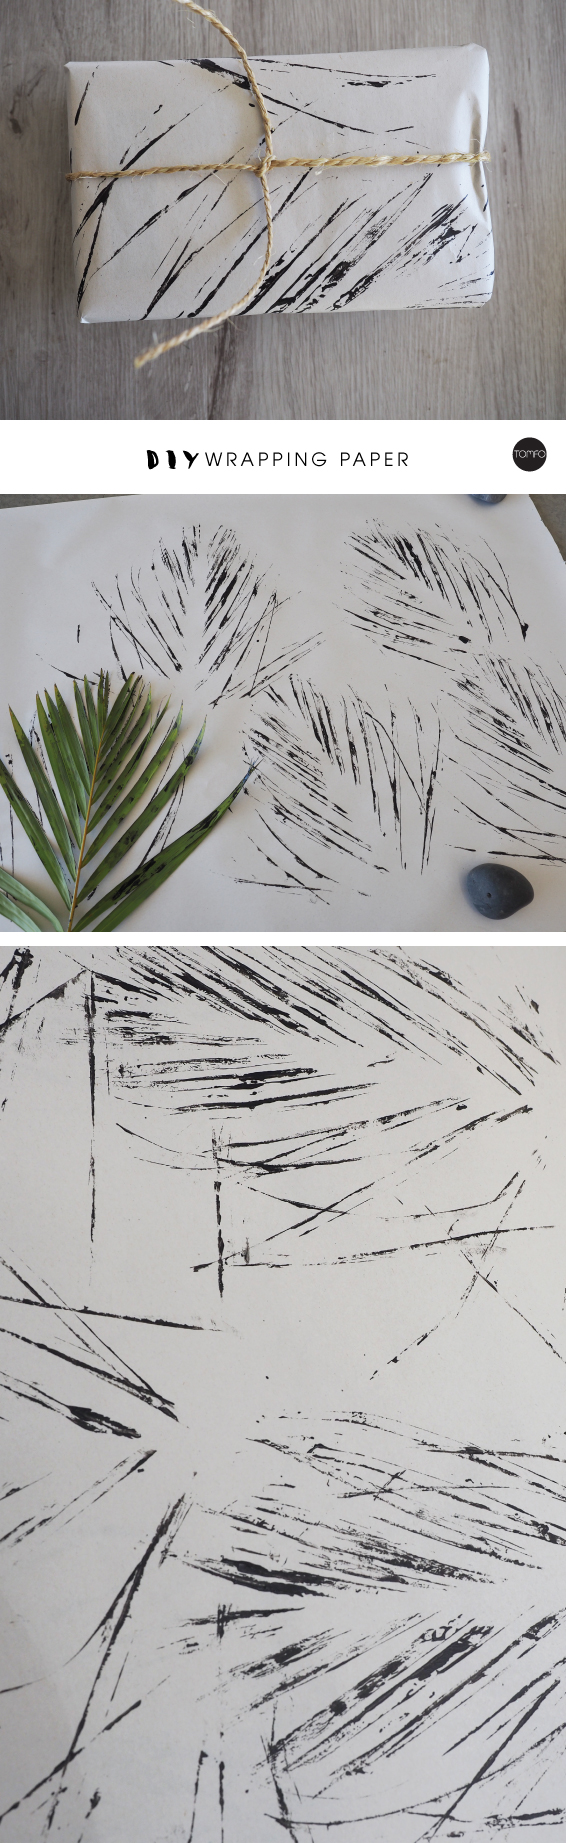 palm-diy-wrapping-paper-tomfo